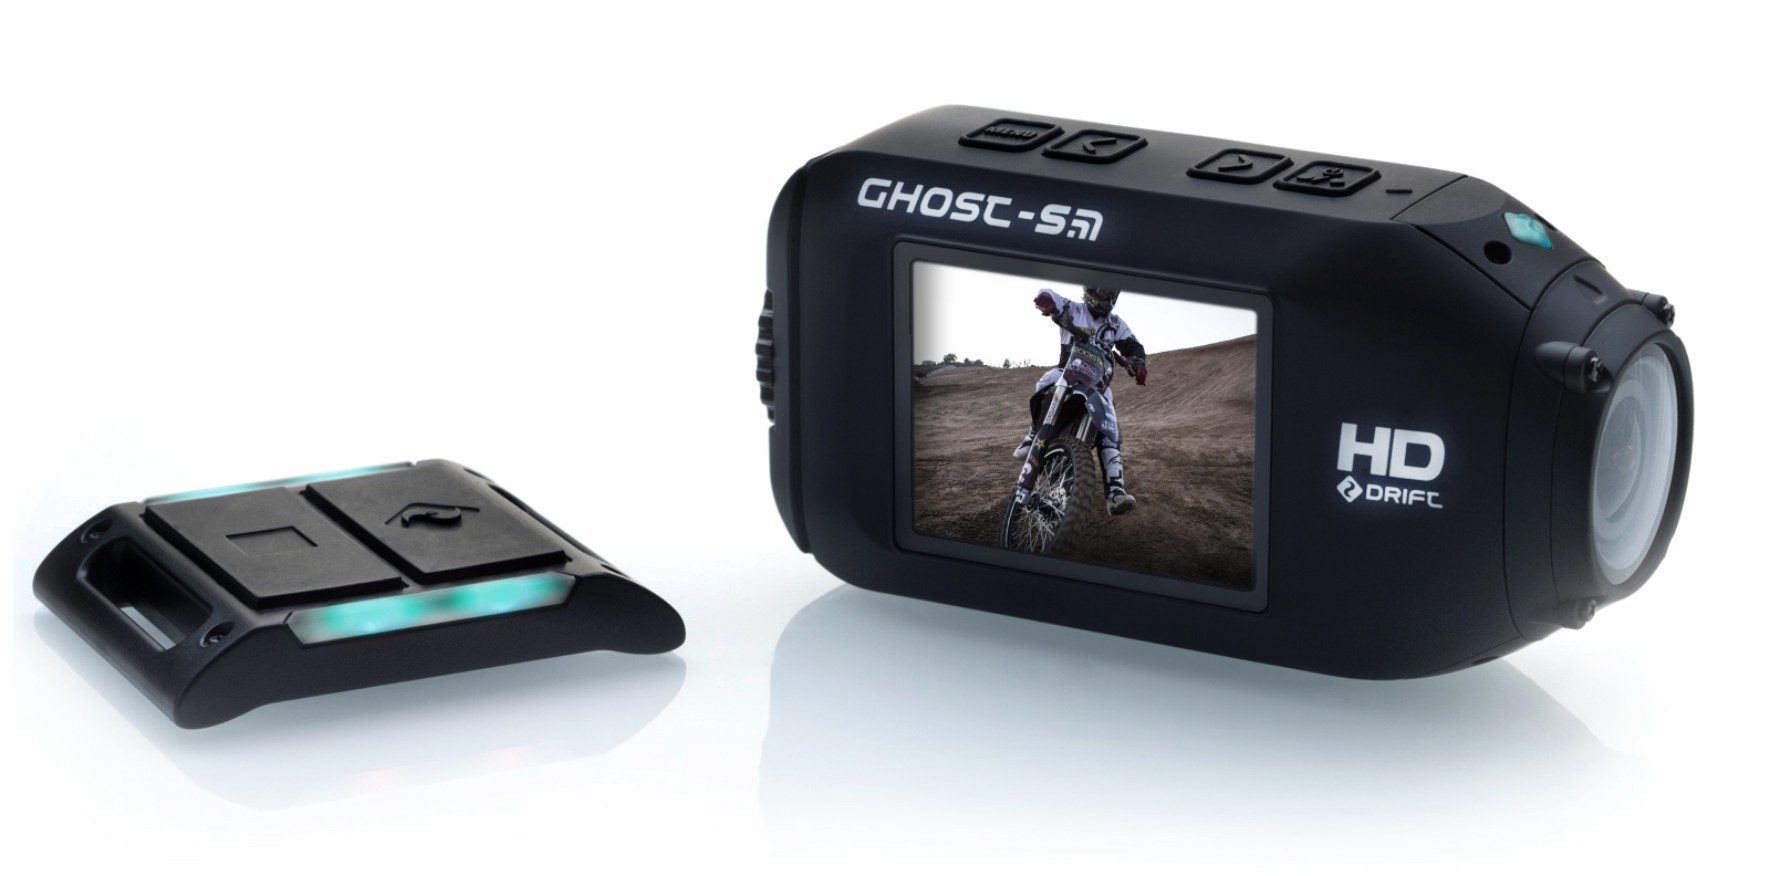 The Drift Ghost-S action camera is here